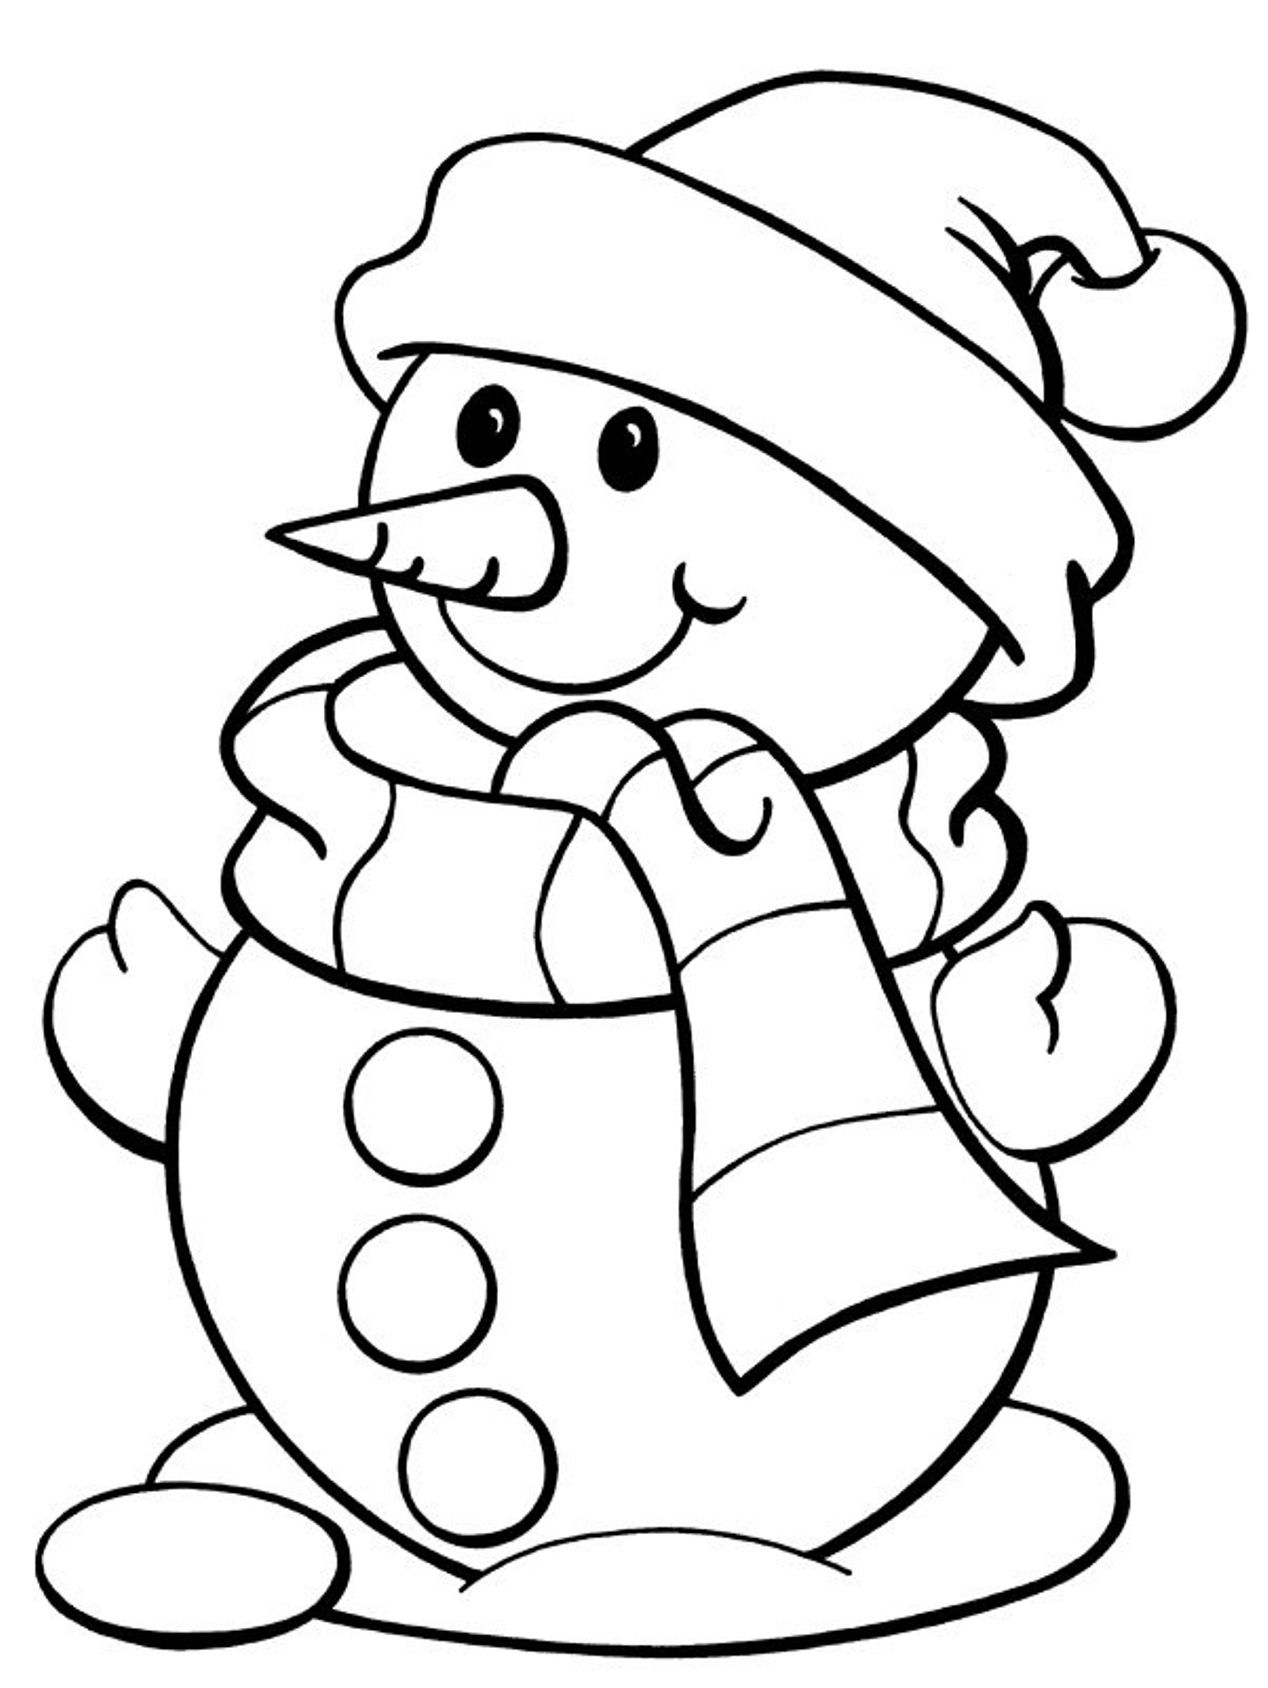 Free winter coloring pages for kids - Winter Coloring Snowman Coloring Pages Winter Free Snowman Coloring Pages Winter Freefull Size Image